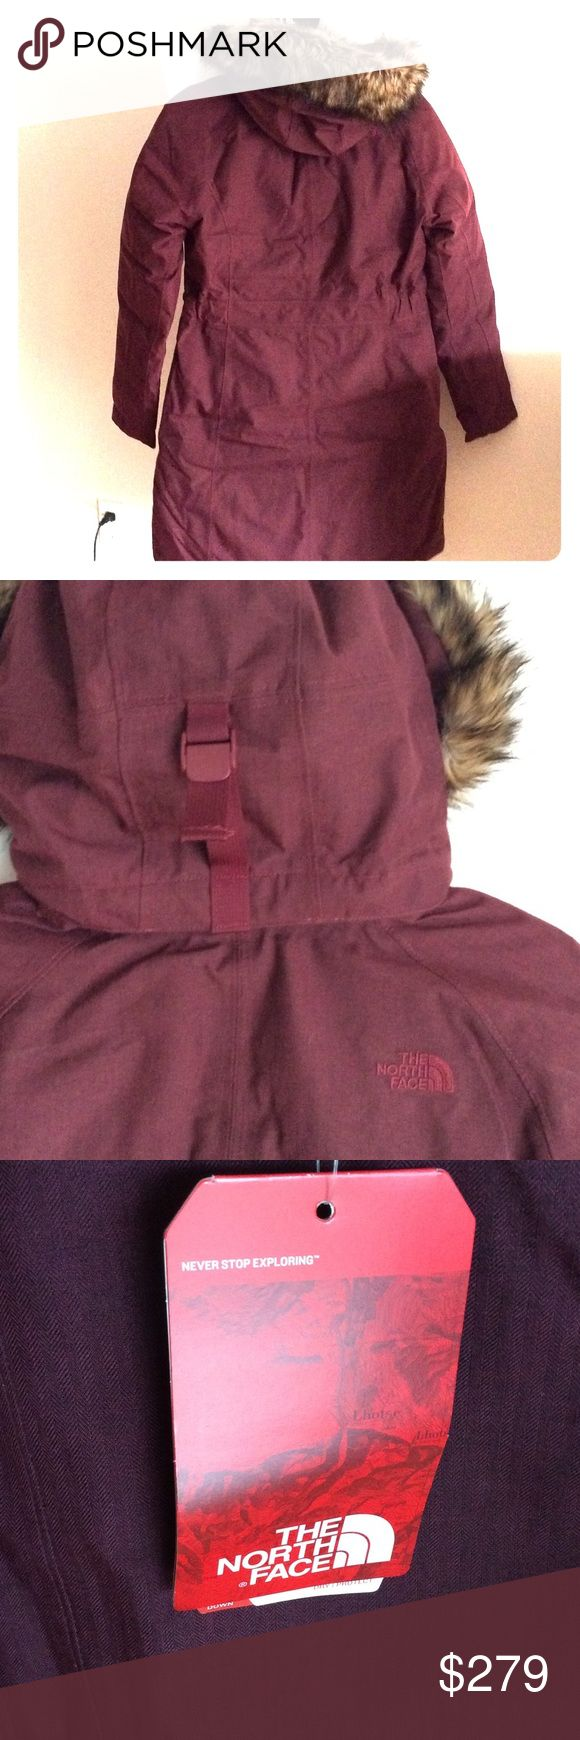 NWNWT North Face Arctic Parka Garnet Red Heather Small North Face Jackets & Coats Puffers